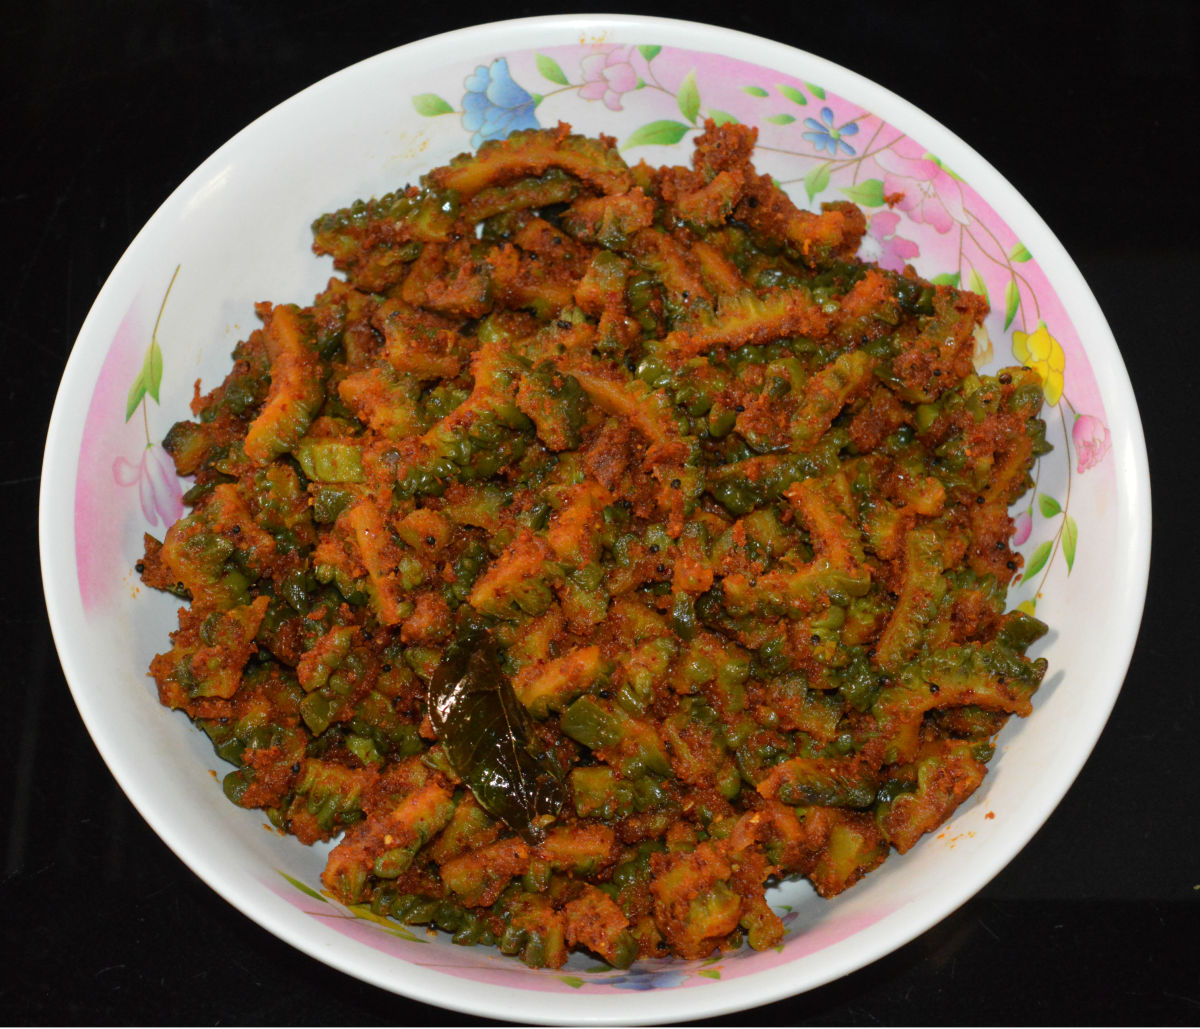 Serve it with steamed rice, adding a spoonful of ghee. This curry goes well with curd rice, also. Enjoy the taste!